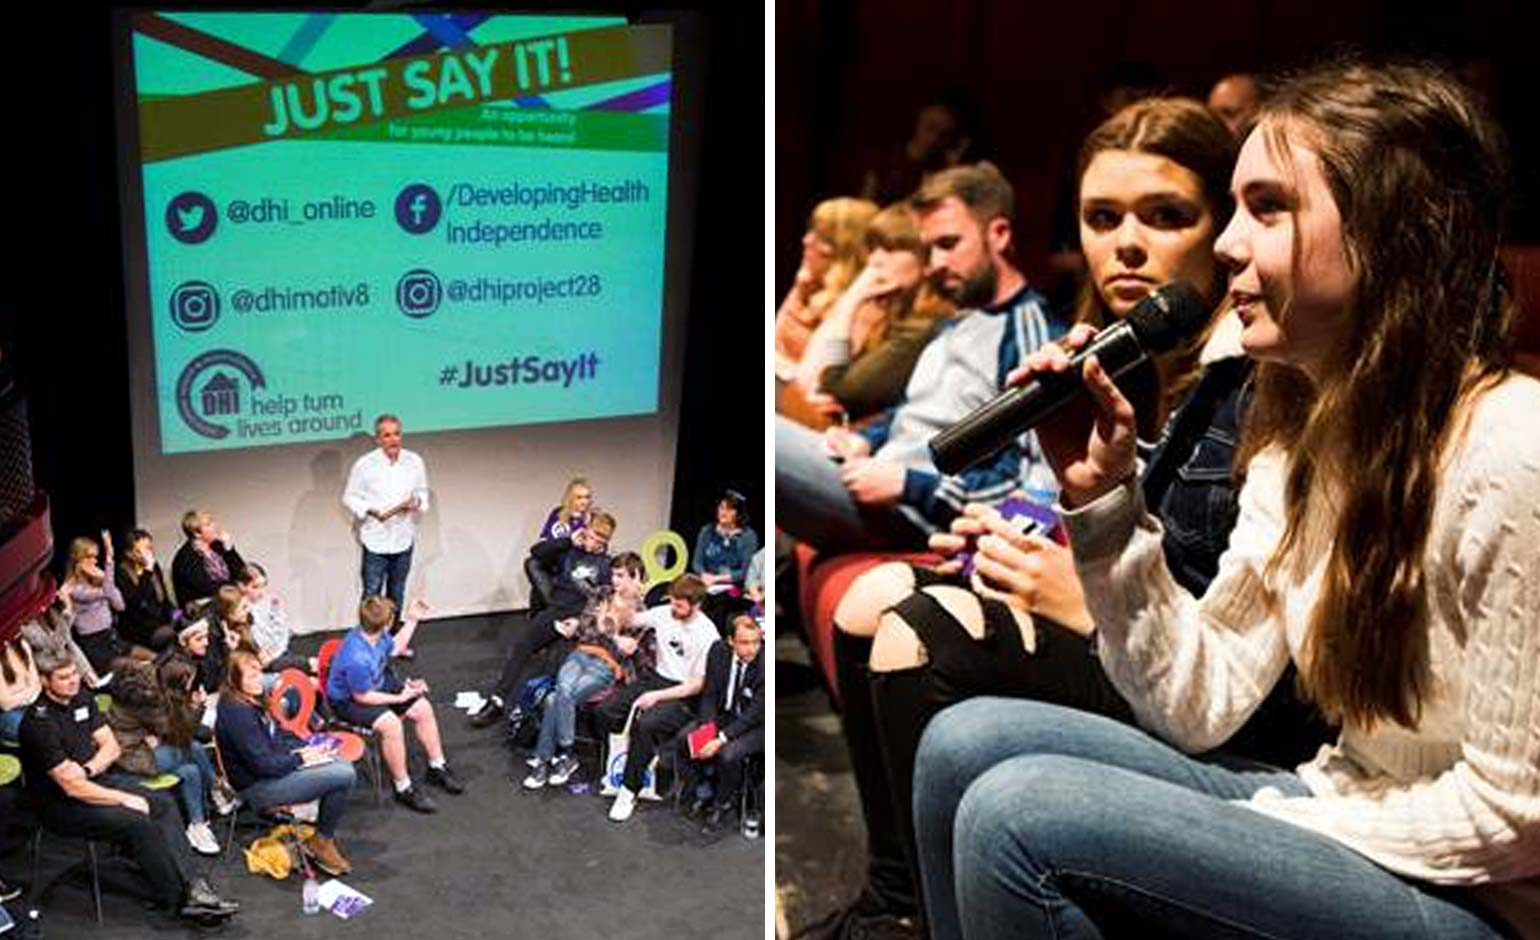 Youngsters take the opportunity to speak out at 'Just Say It' event in Bath